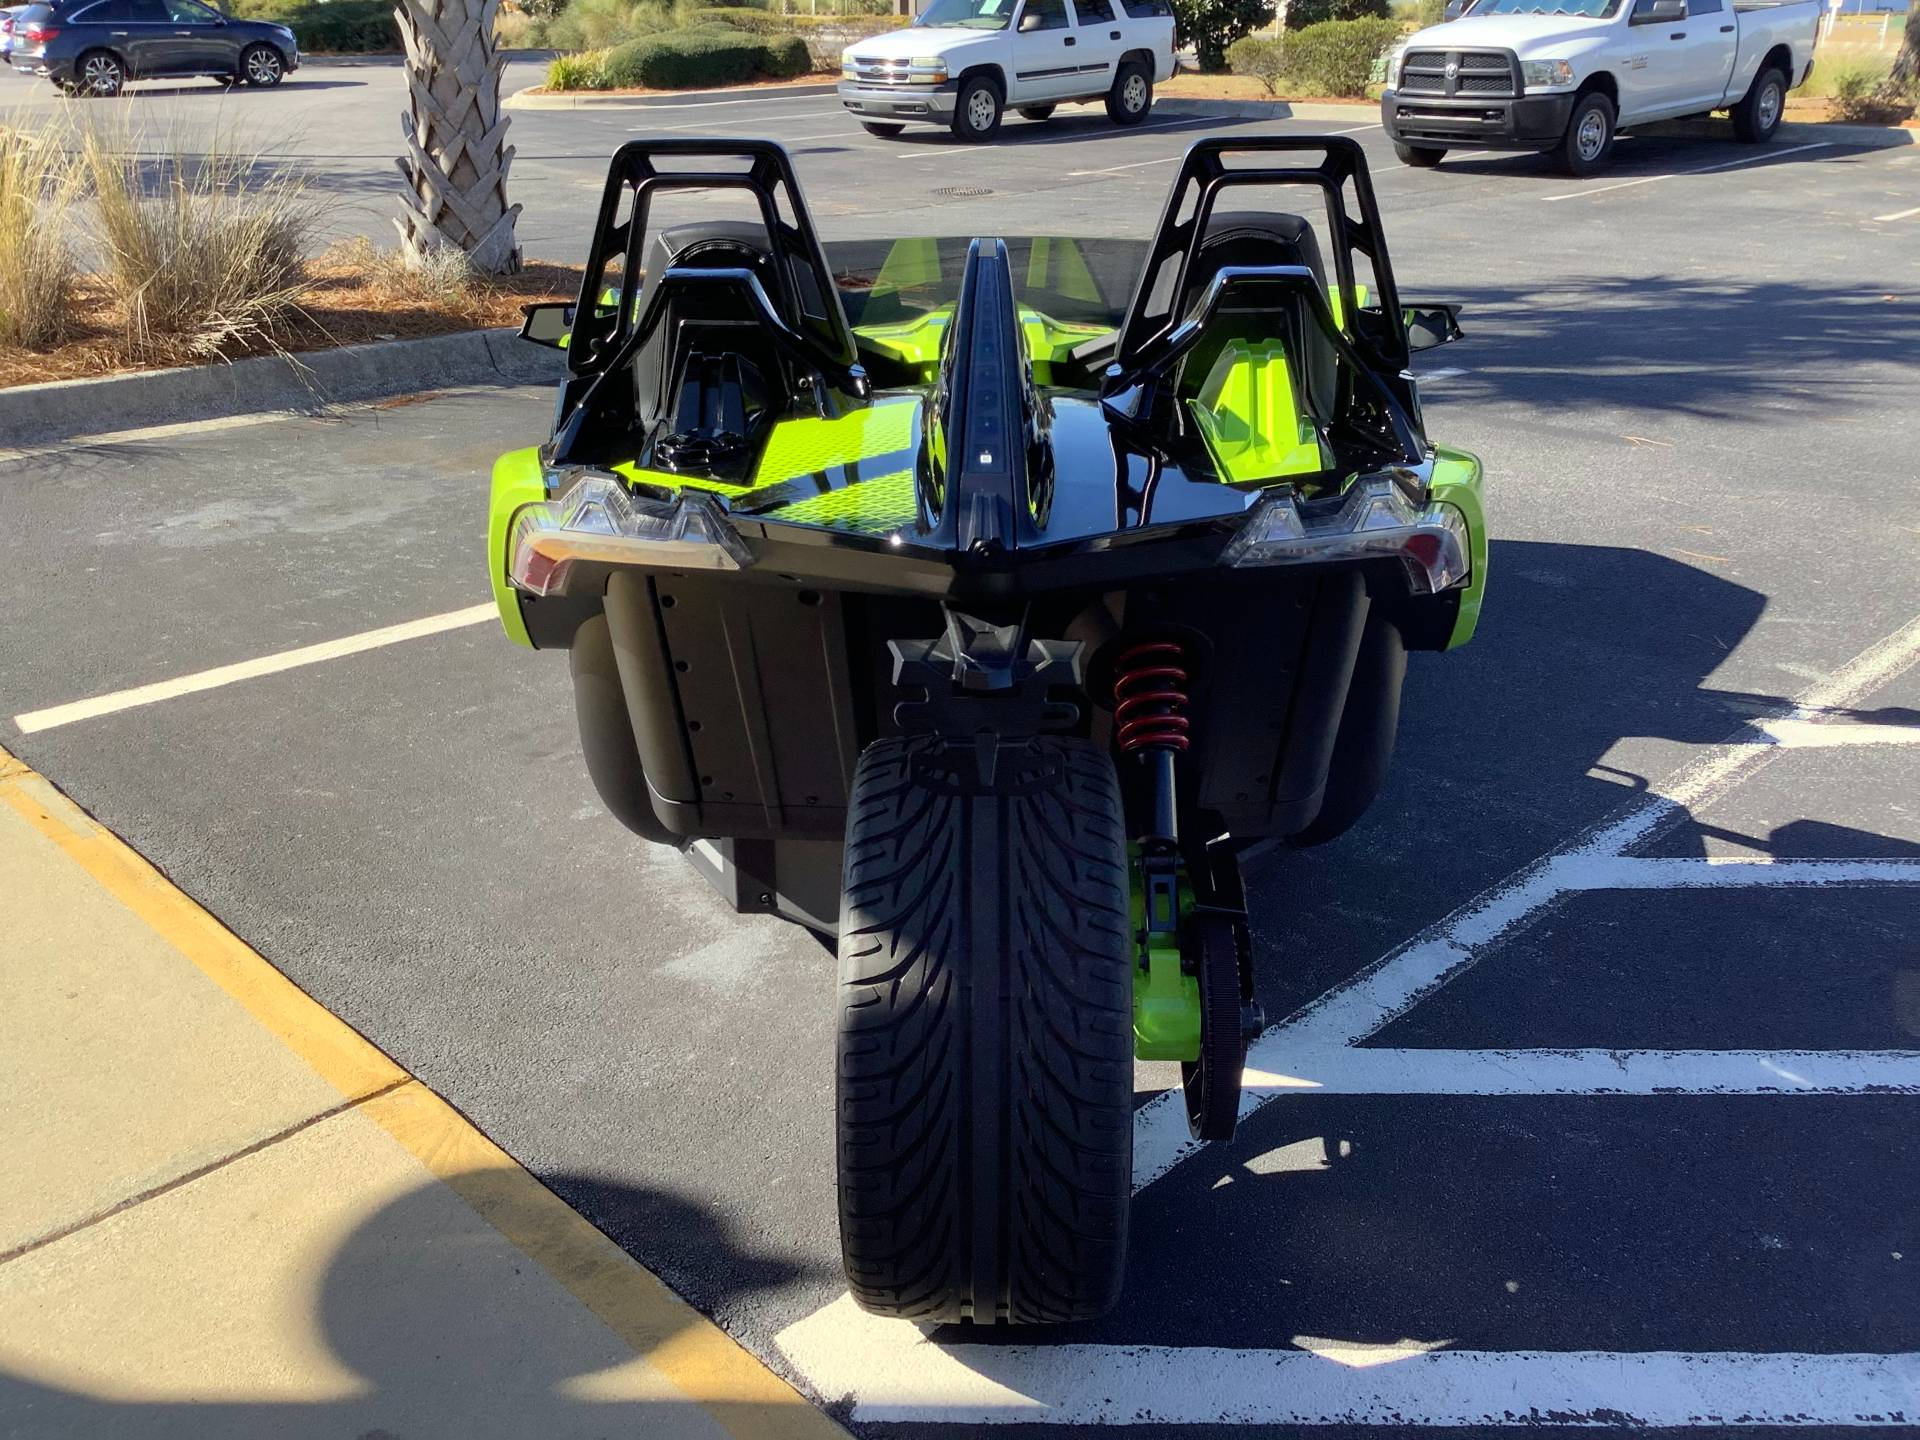 2021 Polaris Slingshot R LE AUTODRIVE in Panama City Beach, Florida - Photo 5